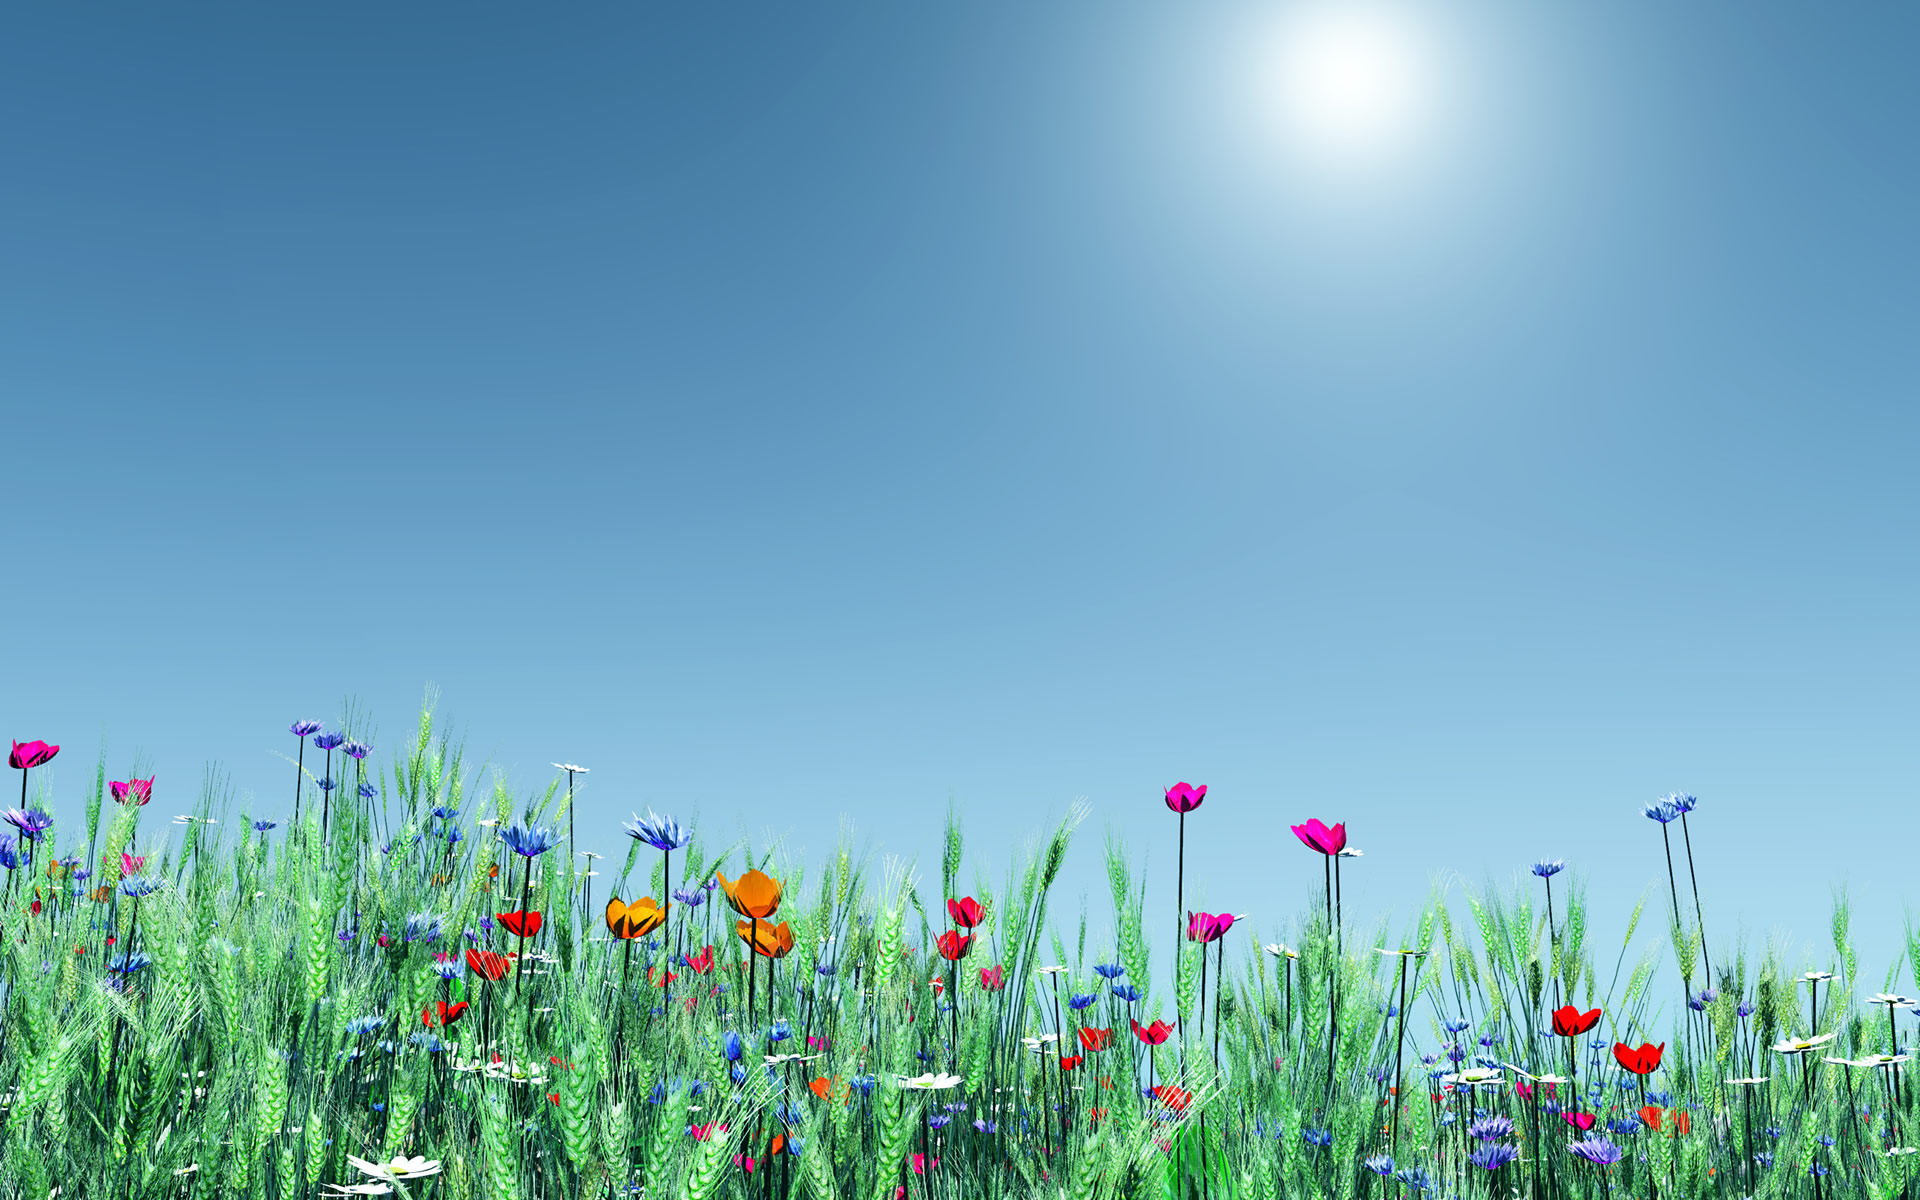 Spring Flowers Backgrounds.